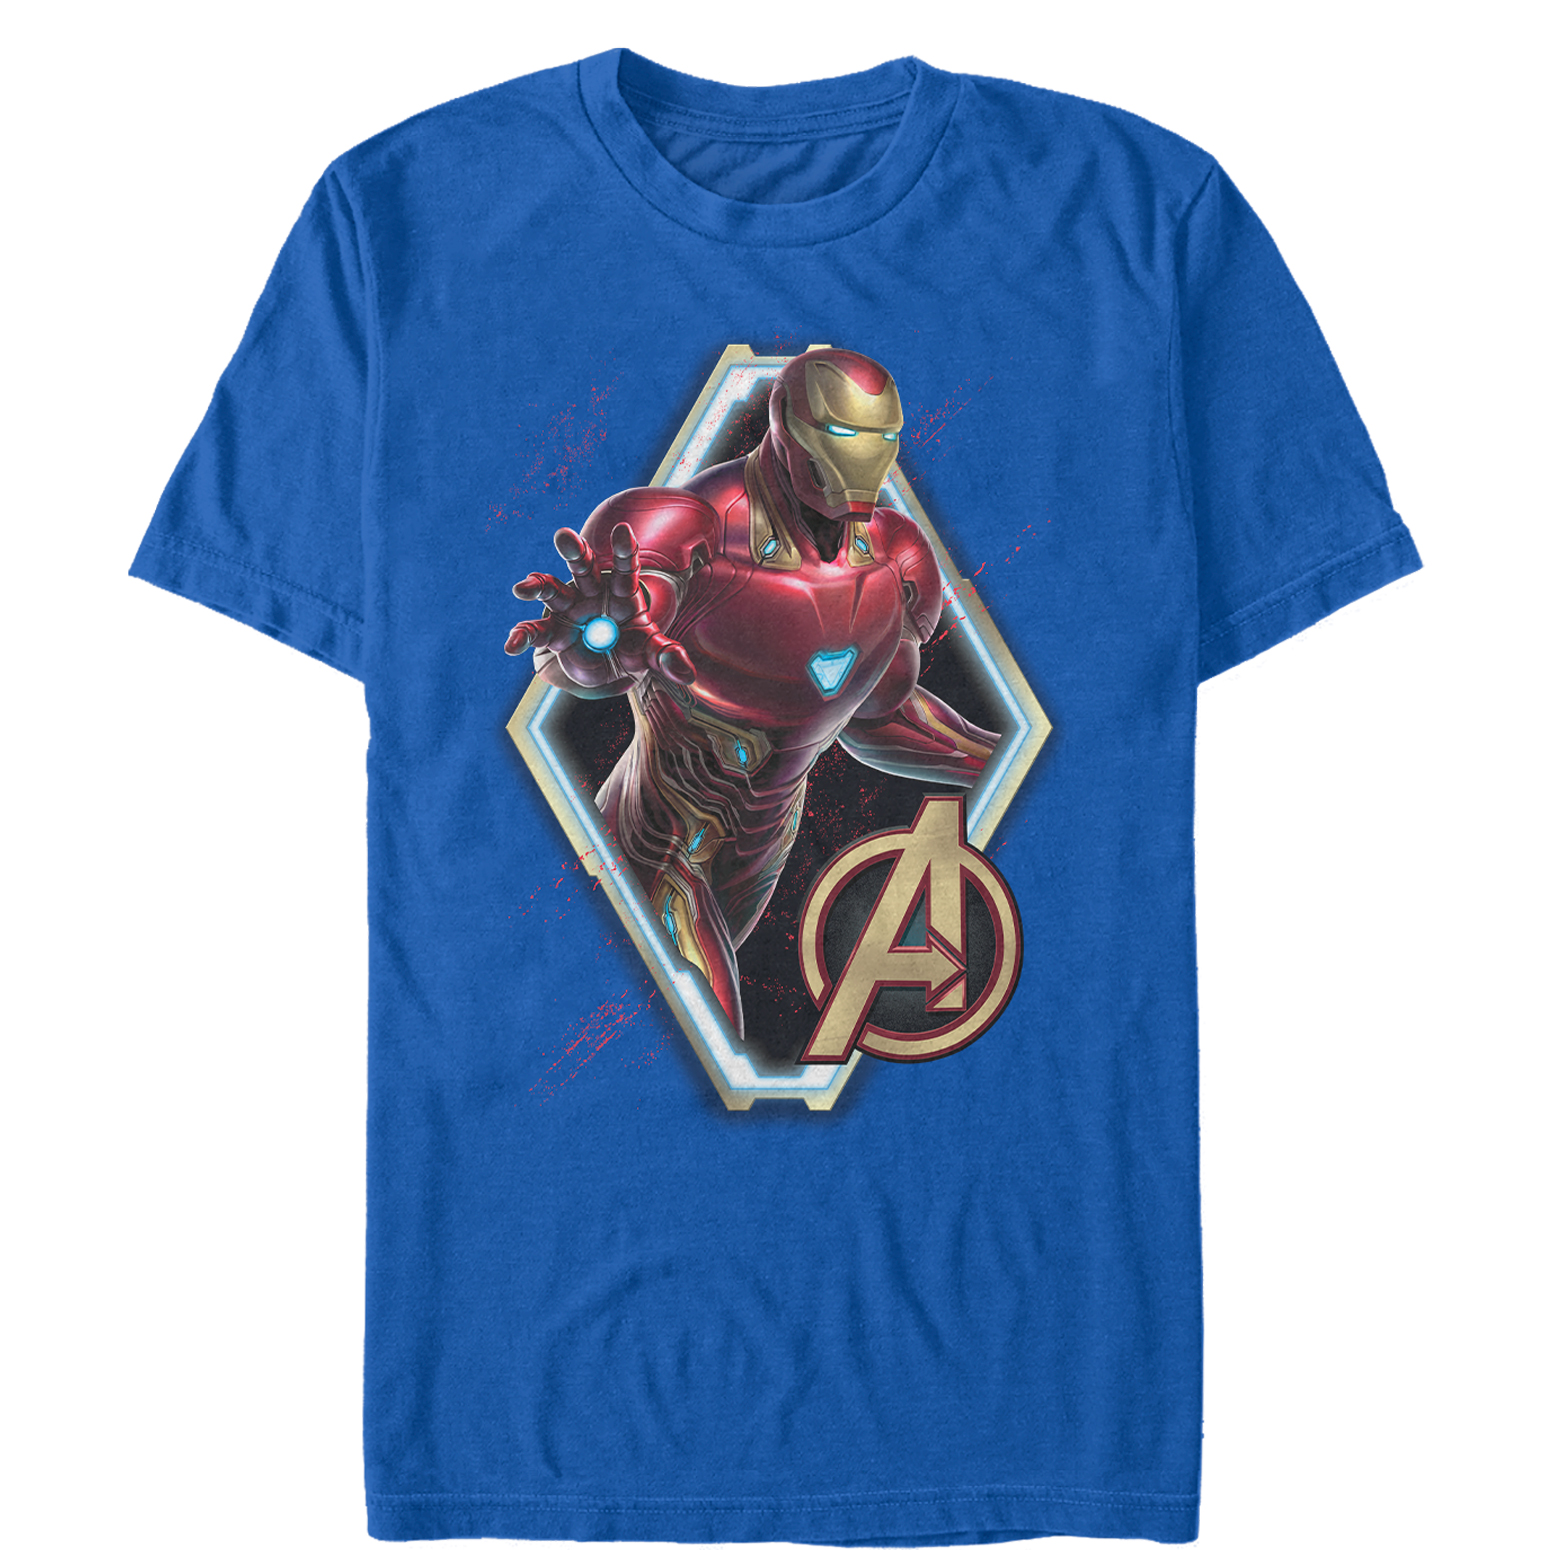 Marvel Men's Avengers: Endgame Iron Man Frame T-Shirt